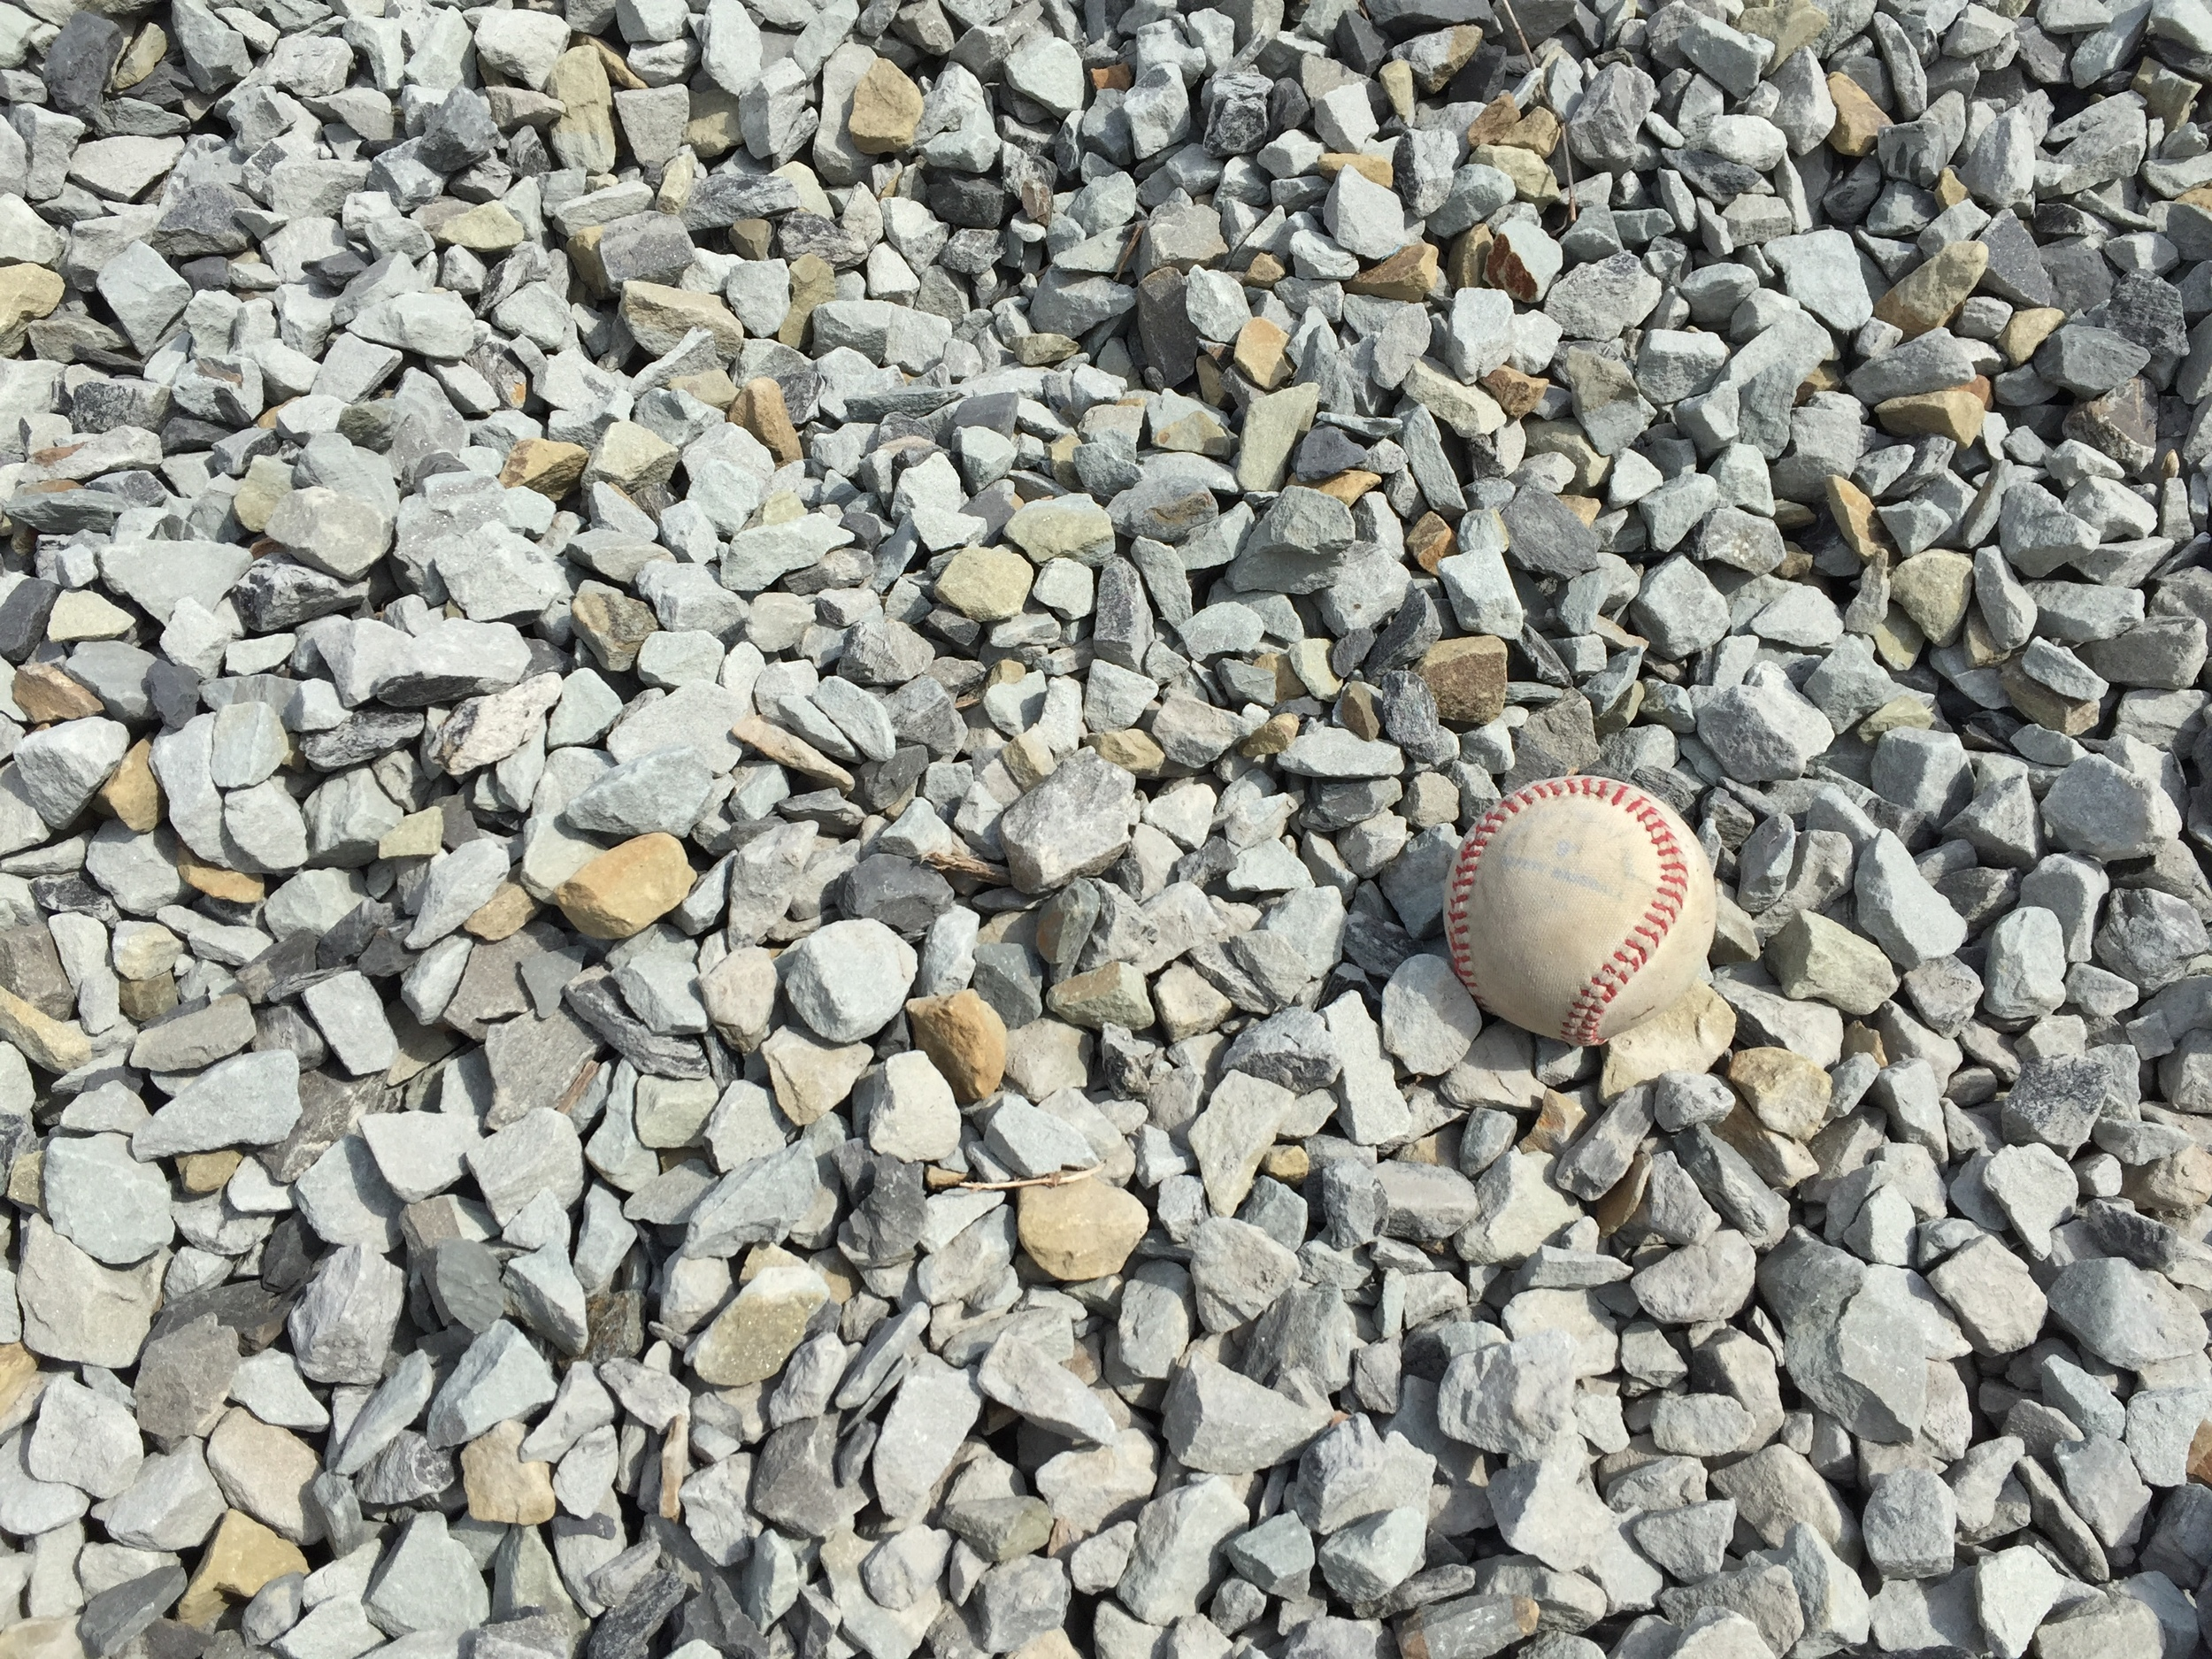 Use this baseball in the picture to gain a perspective on the size of the stone.